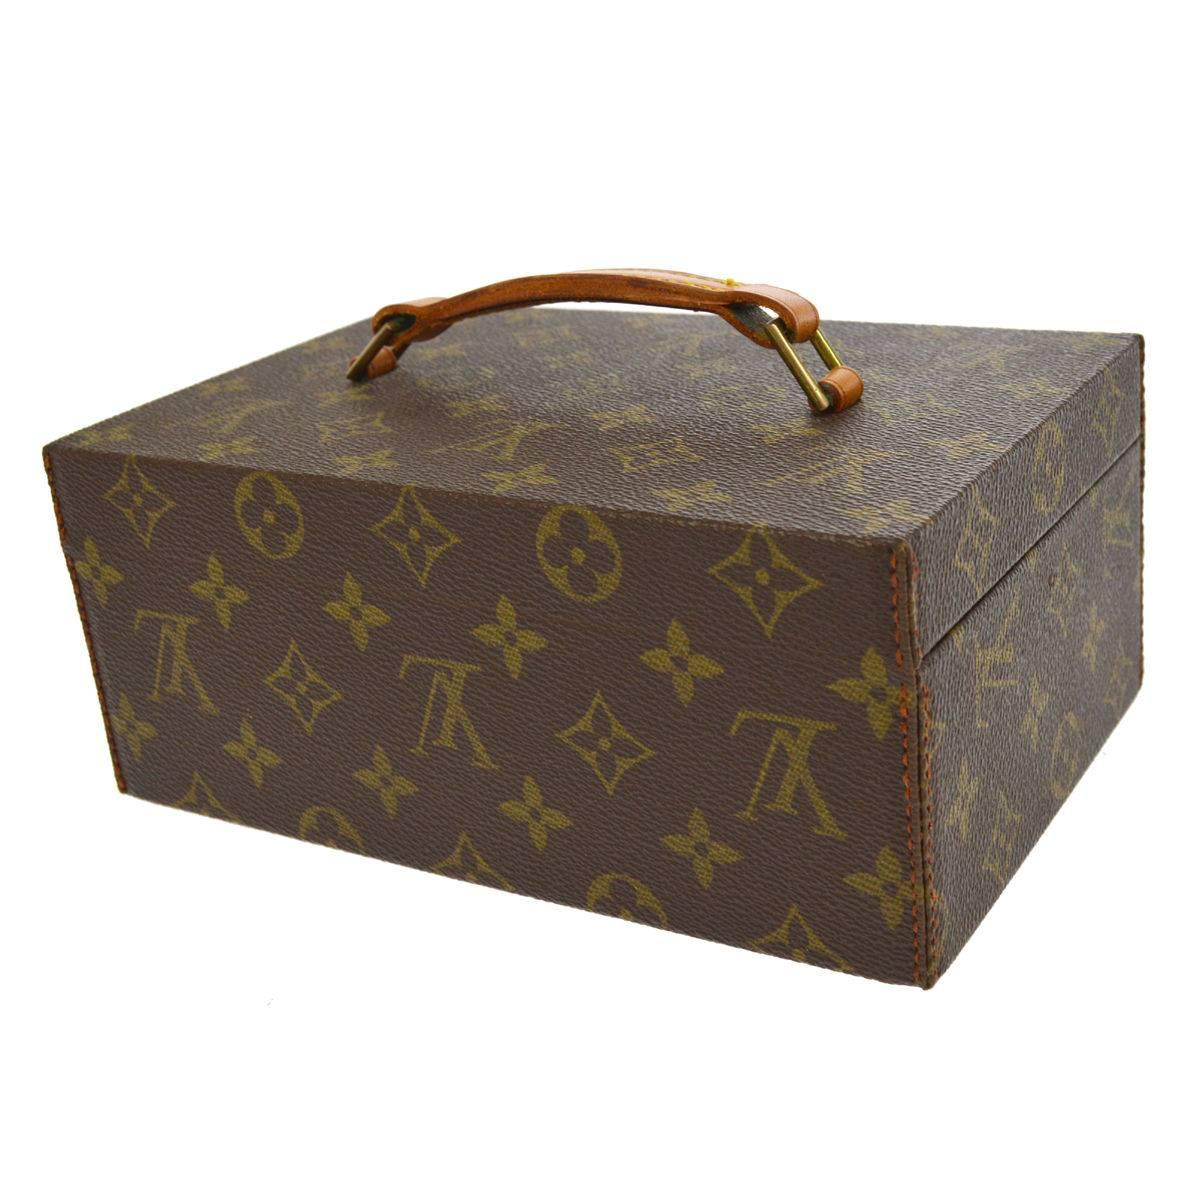 Black Louis Vuitton Monogram Top Handle Menu0027s Jewelry Travel Storage Case  With Keys For Sale